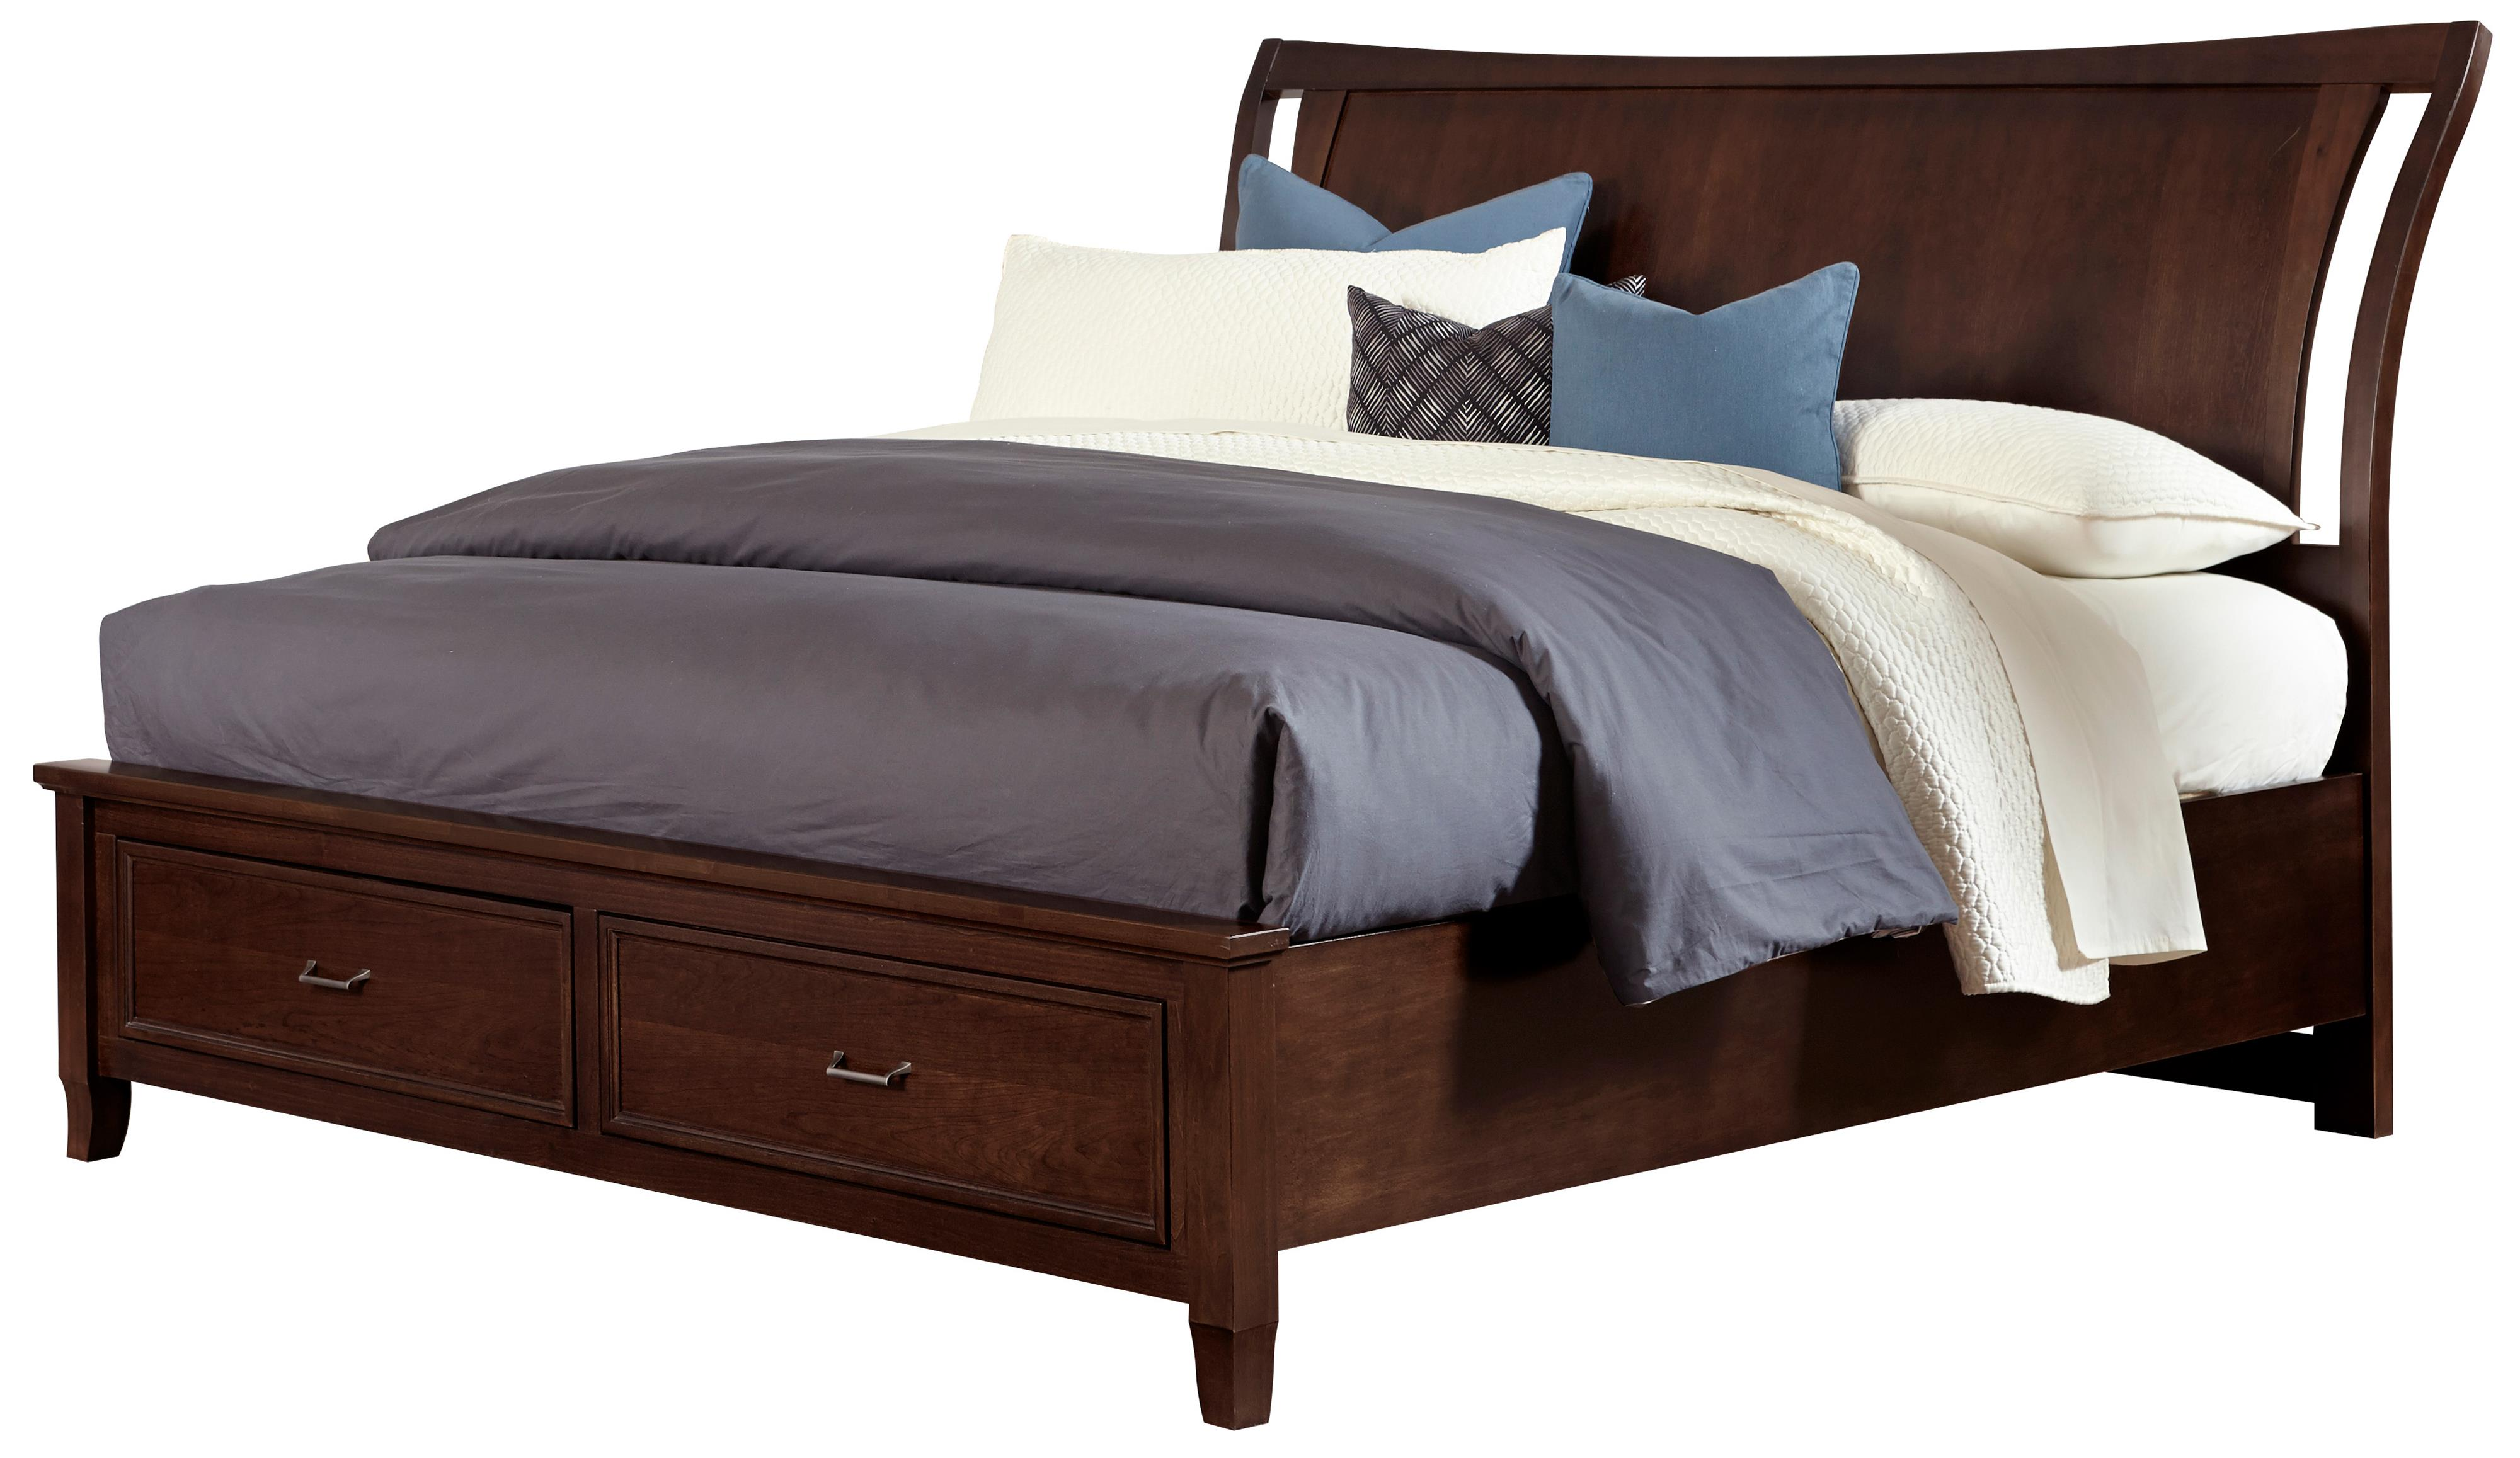 Vaughan Bassett Commentary Queen Wing Bed with Storage Footboard - Item Number: 392-551+050B+502+555T